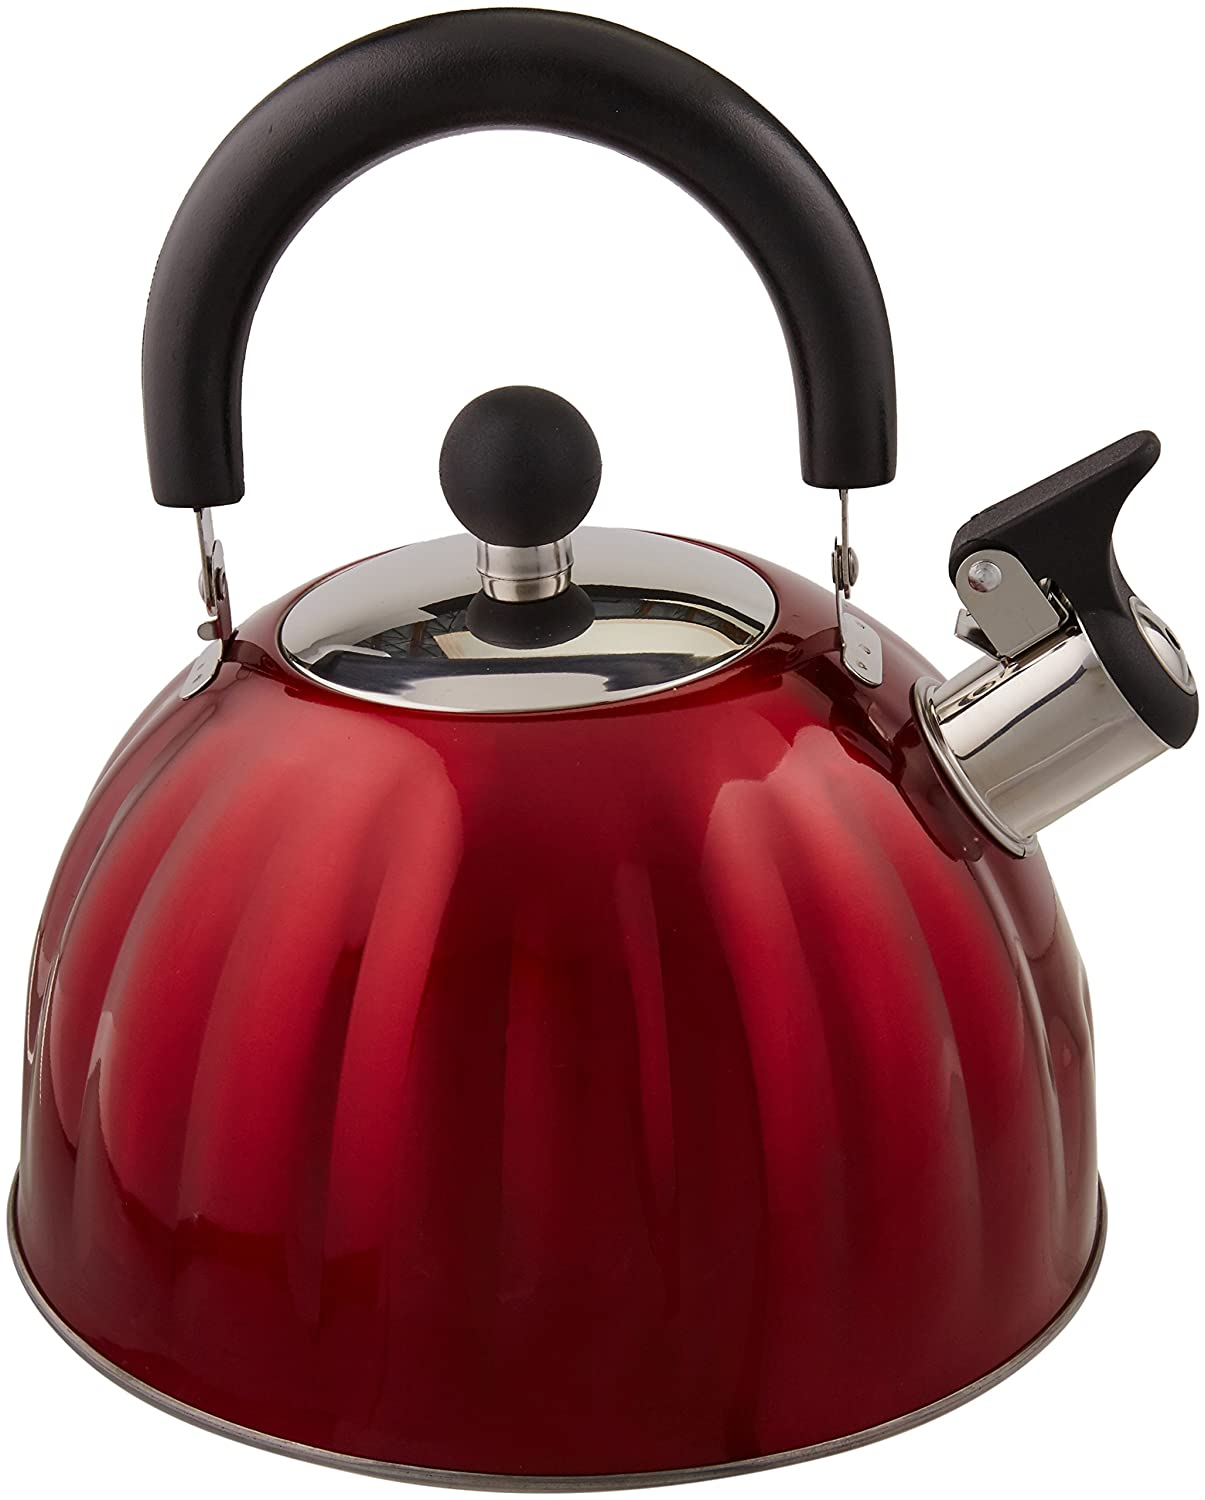 Mr Coffee 108075.01 Mr. Coffee Claredale Stainless Steel Whistling Tea Kettle, 2.2 QT (2,1 L), Brushed Stainless Steel